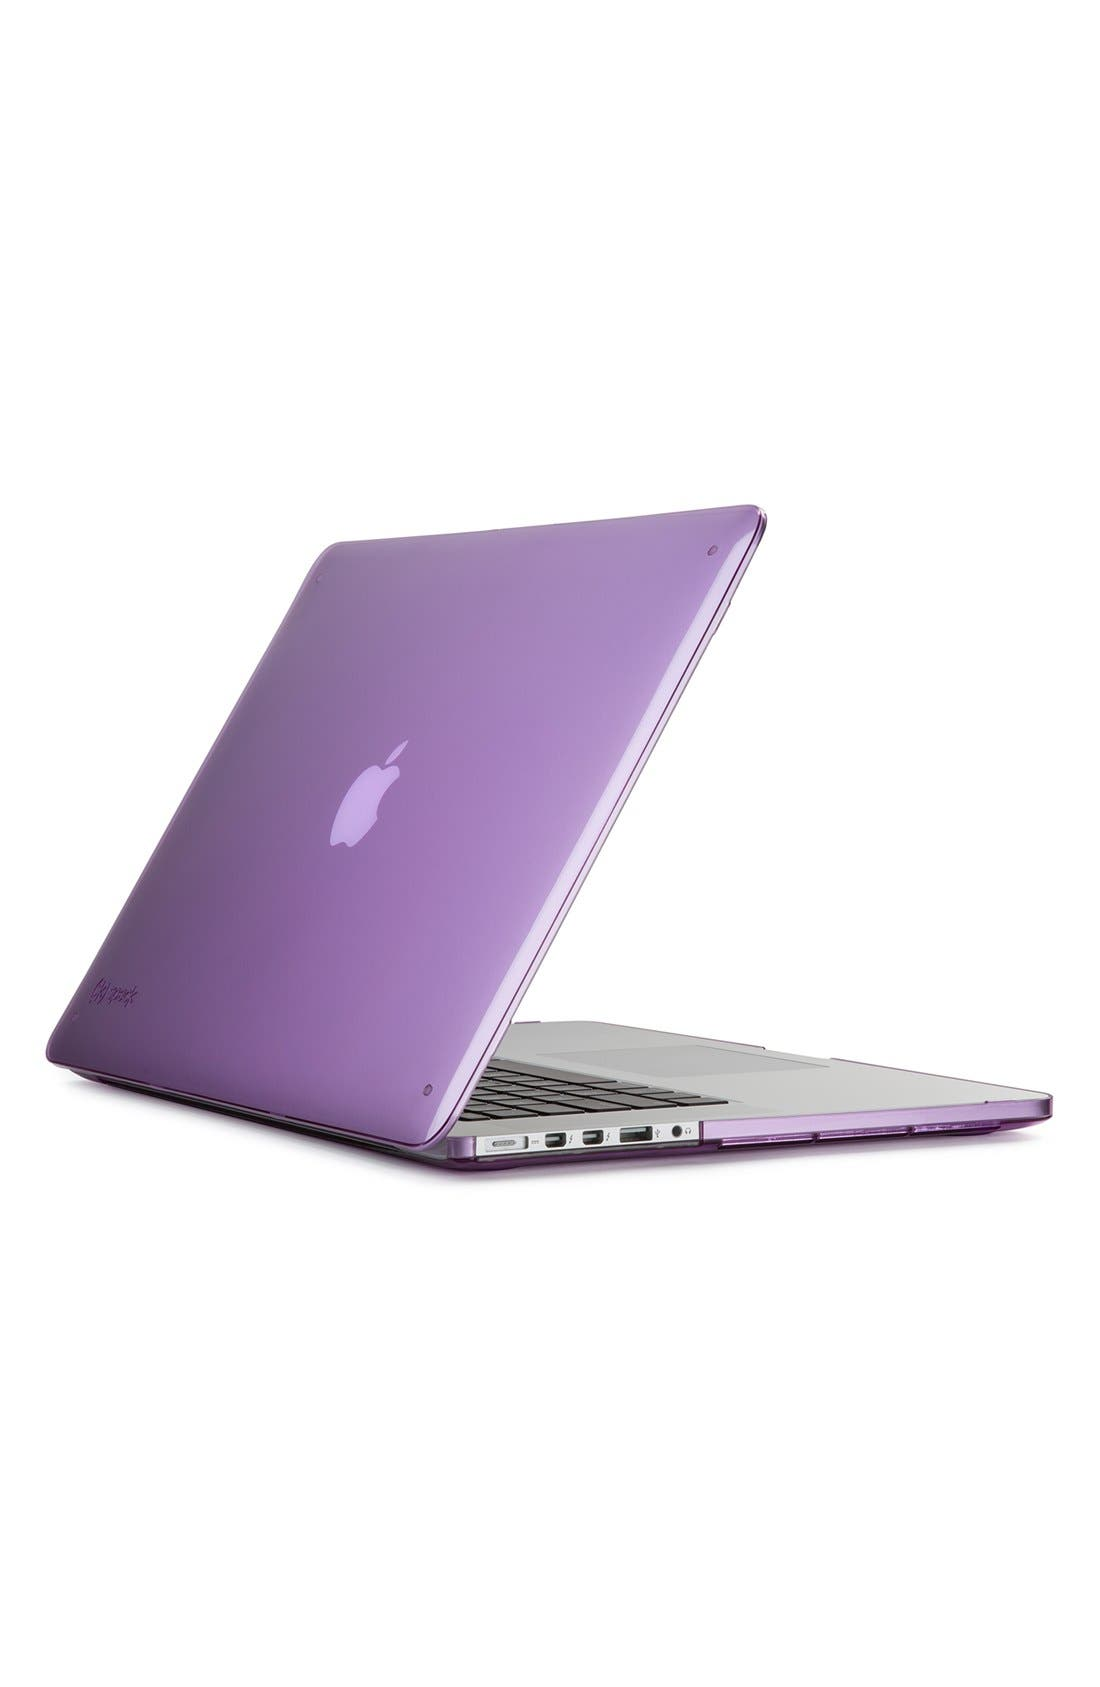 Main Image - Speck 'SmartShell' Snap-On MacBook Pro Retina Laptop Case (15 Inch)